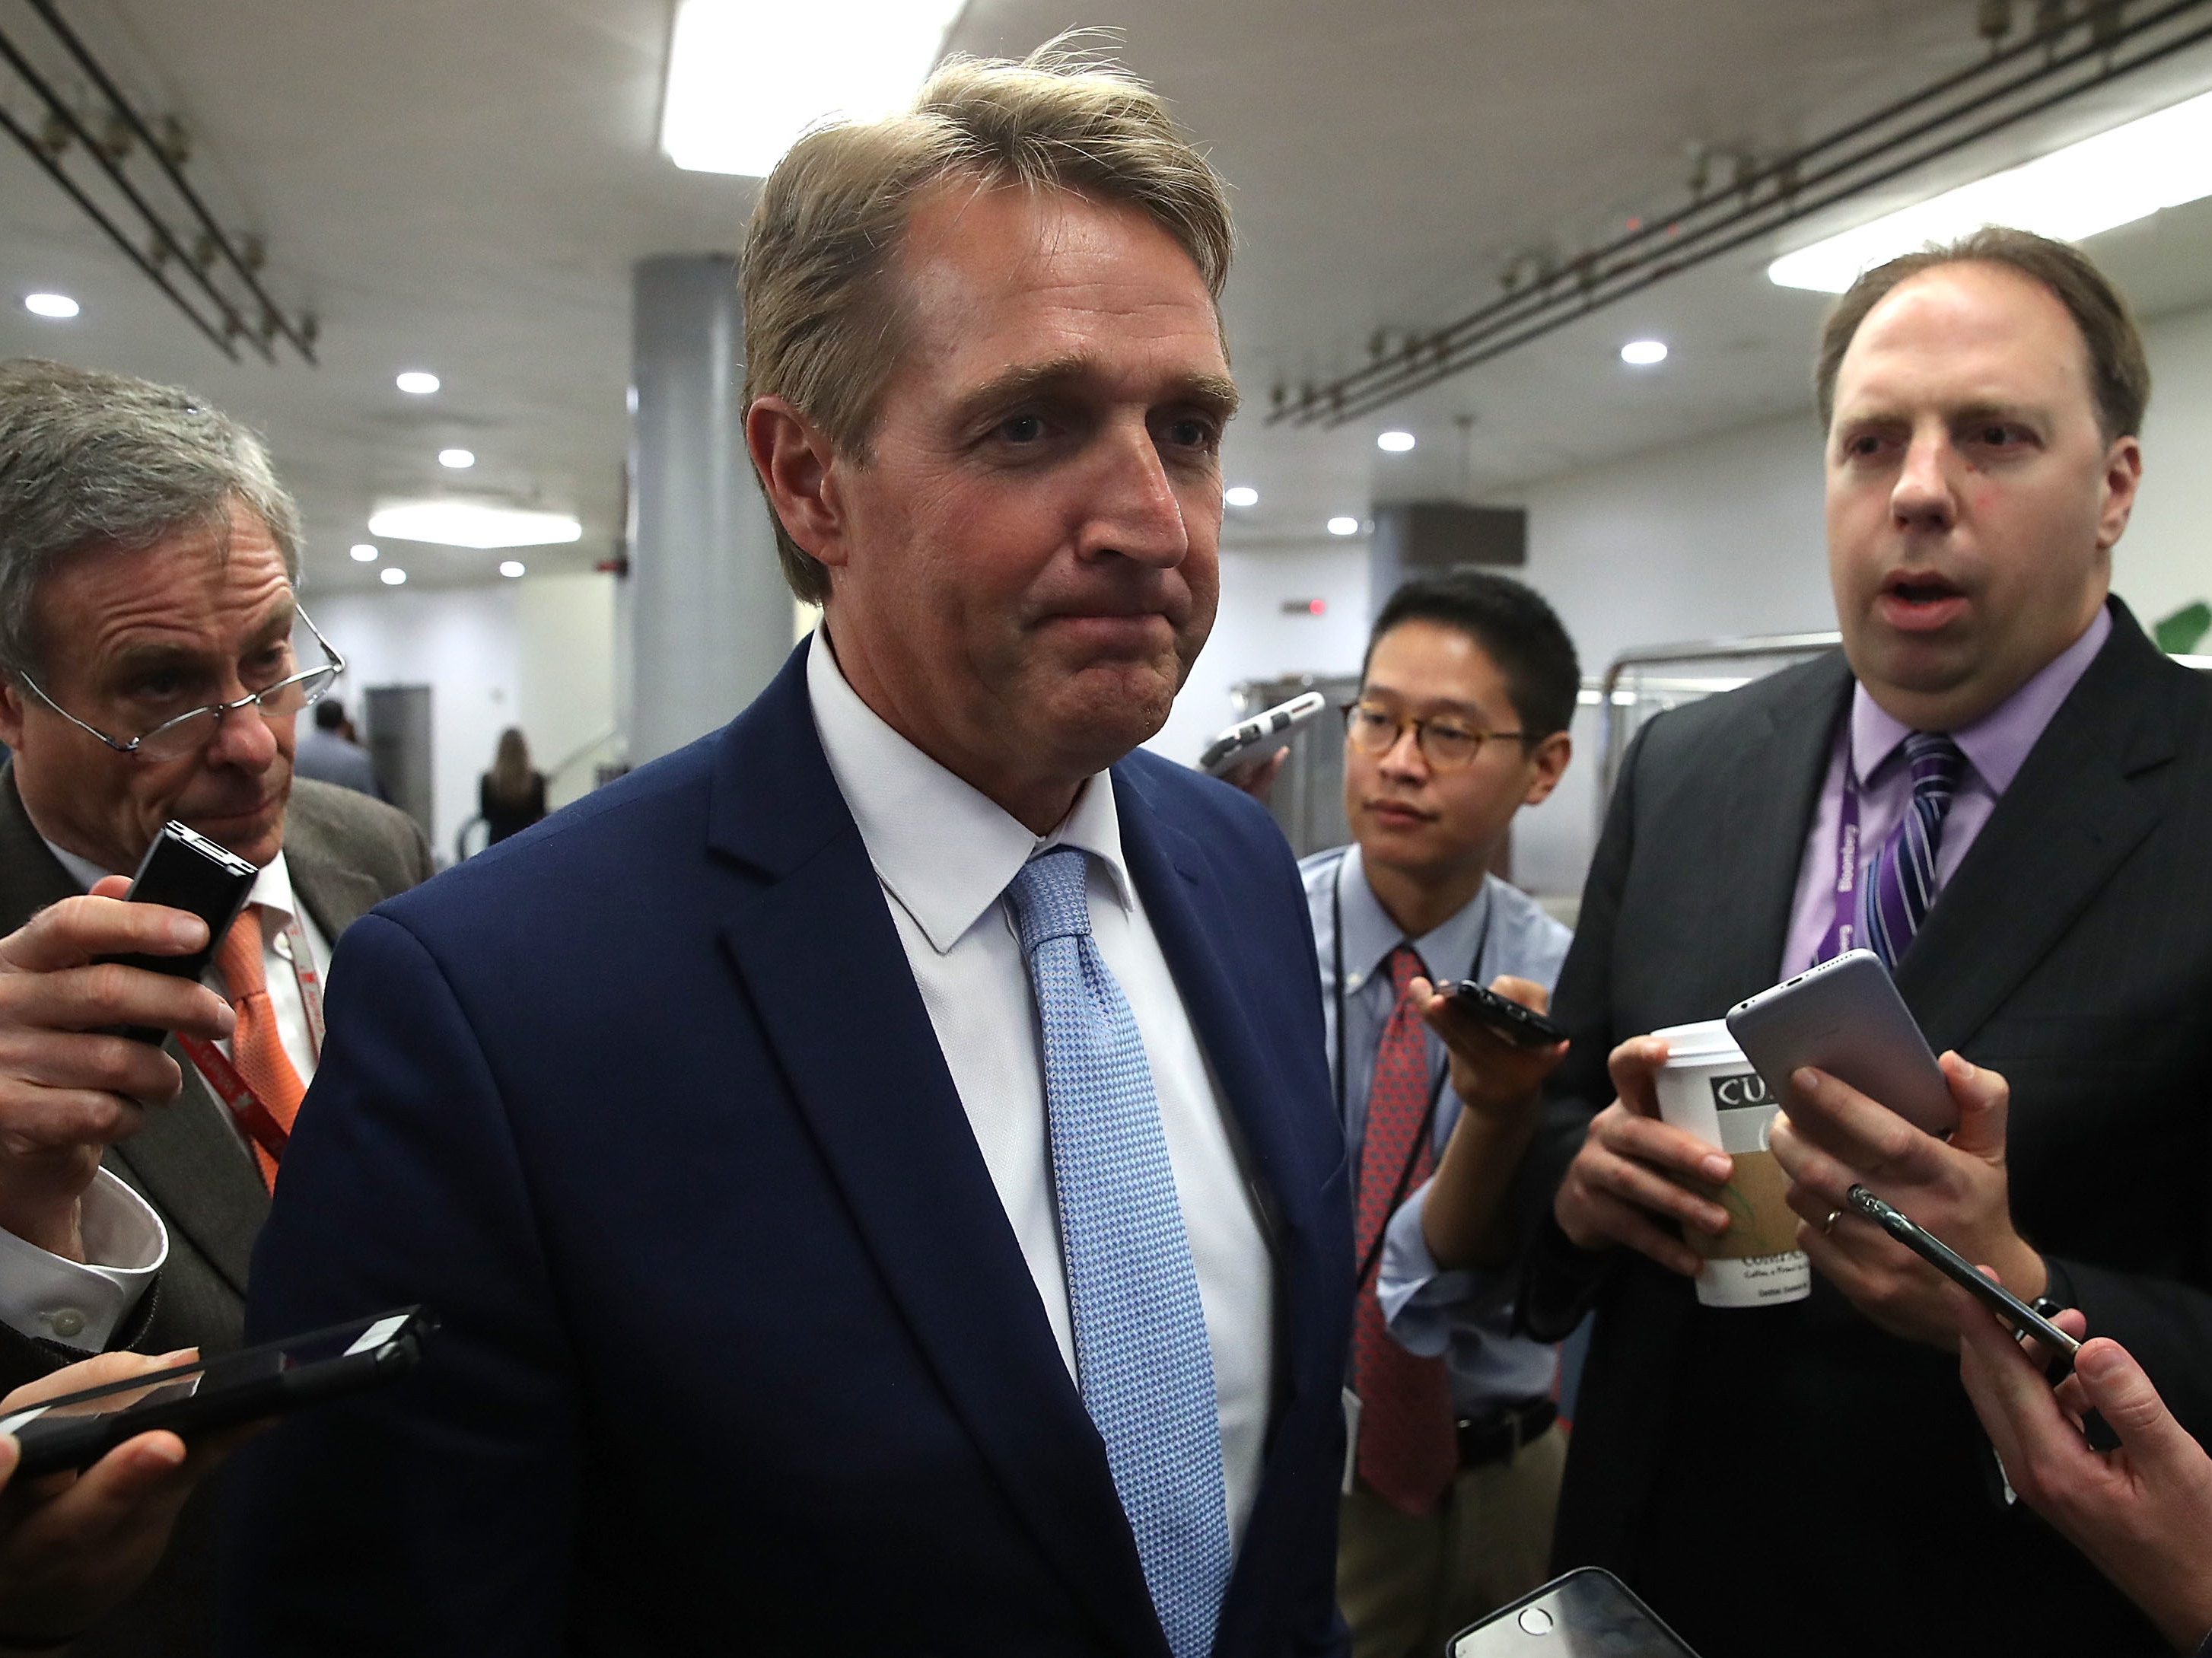 Surprise! John McCain's 2016 Primary Challenger is Now Aiming for Jeff Flake